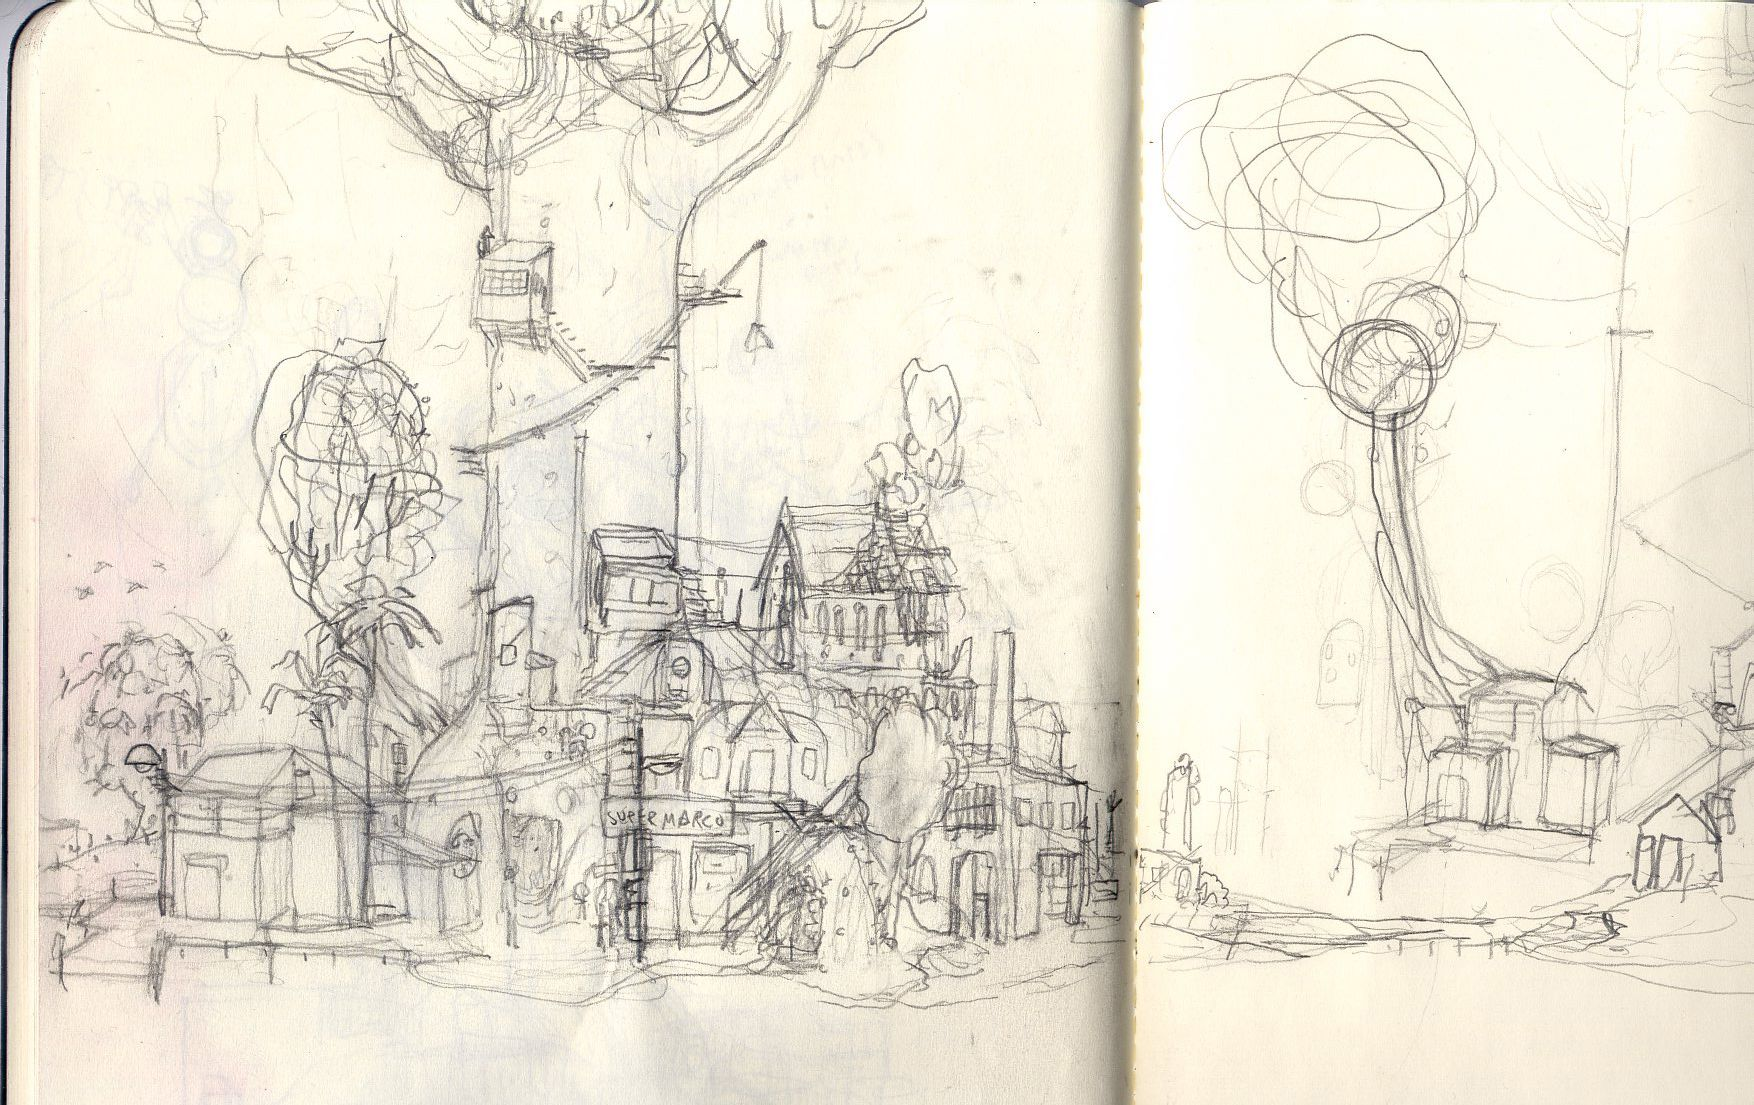 a more compact and clear pencil sketch of Mutazione village.